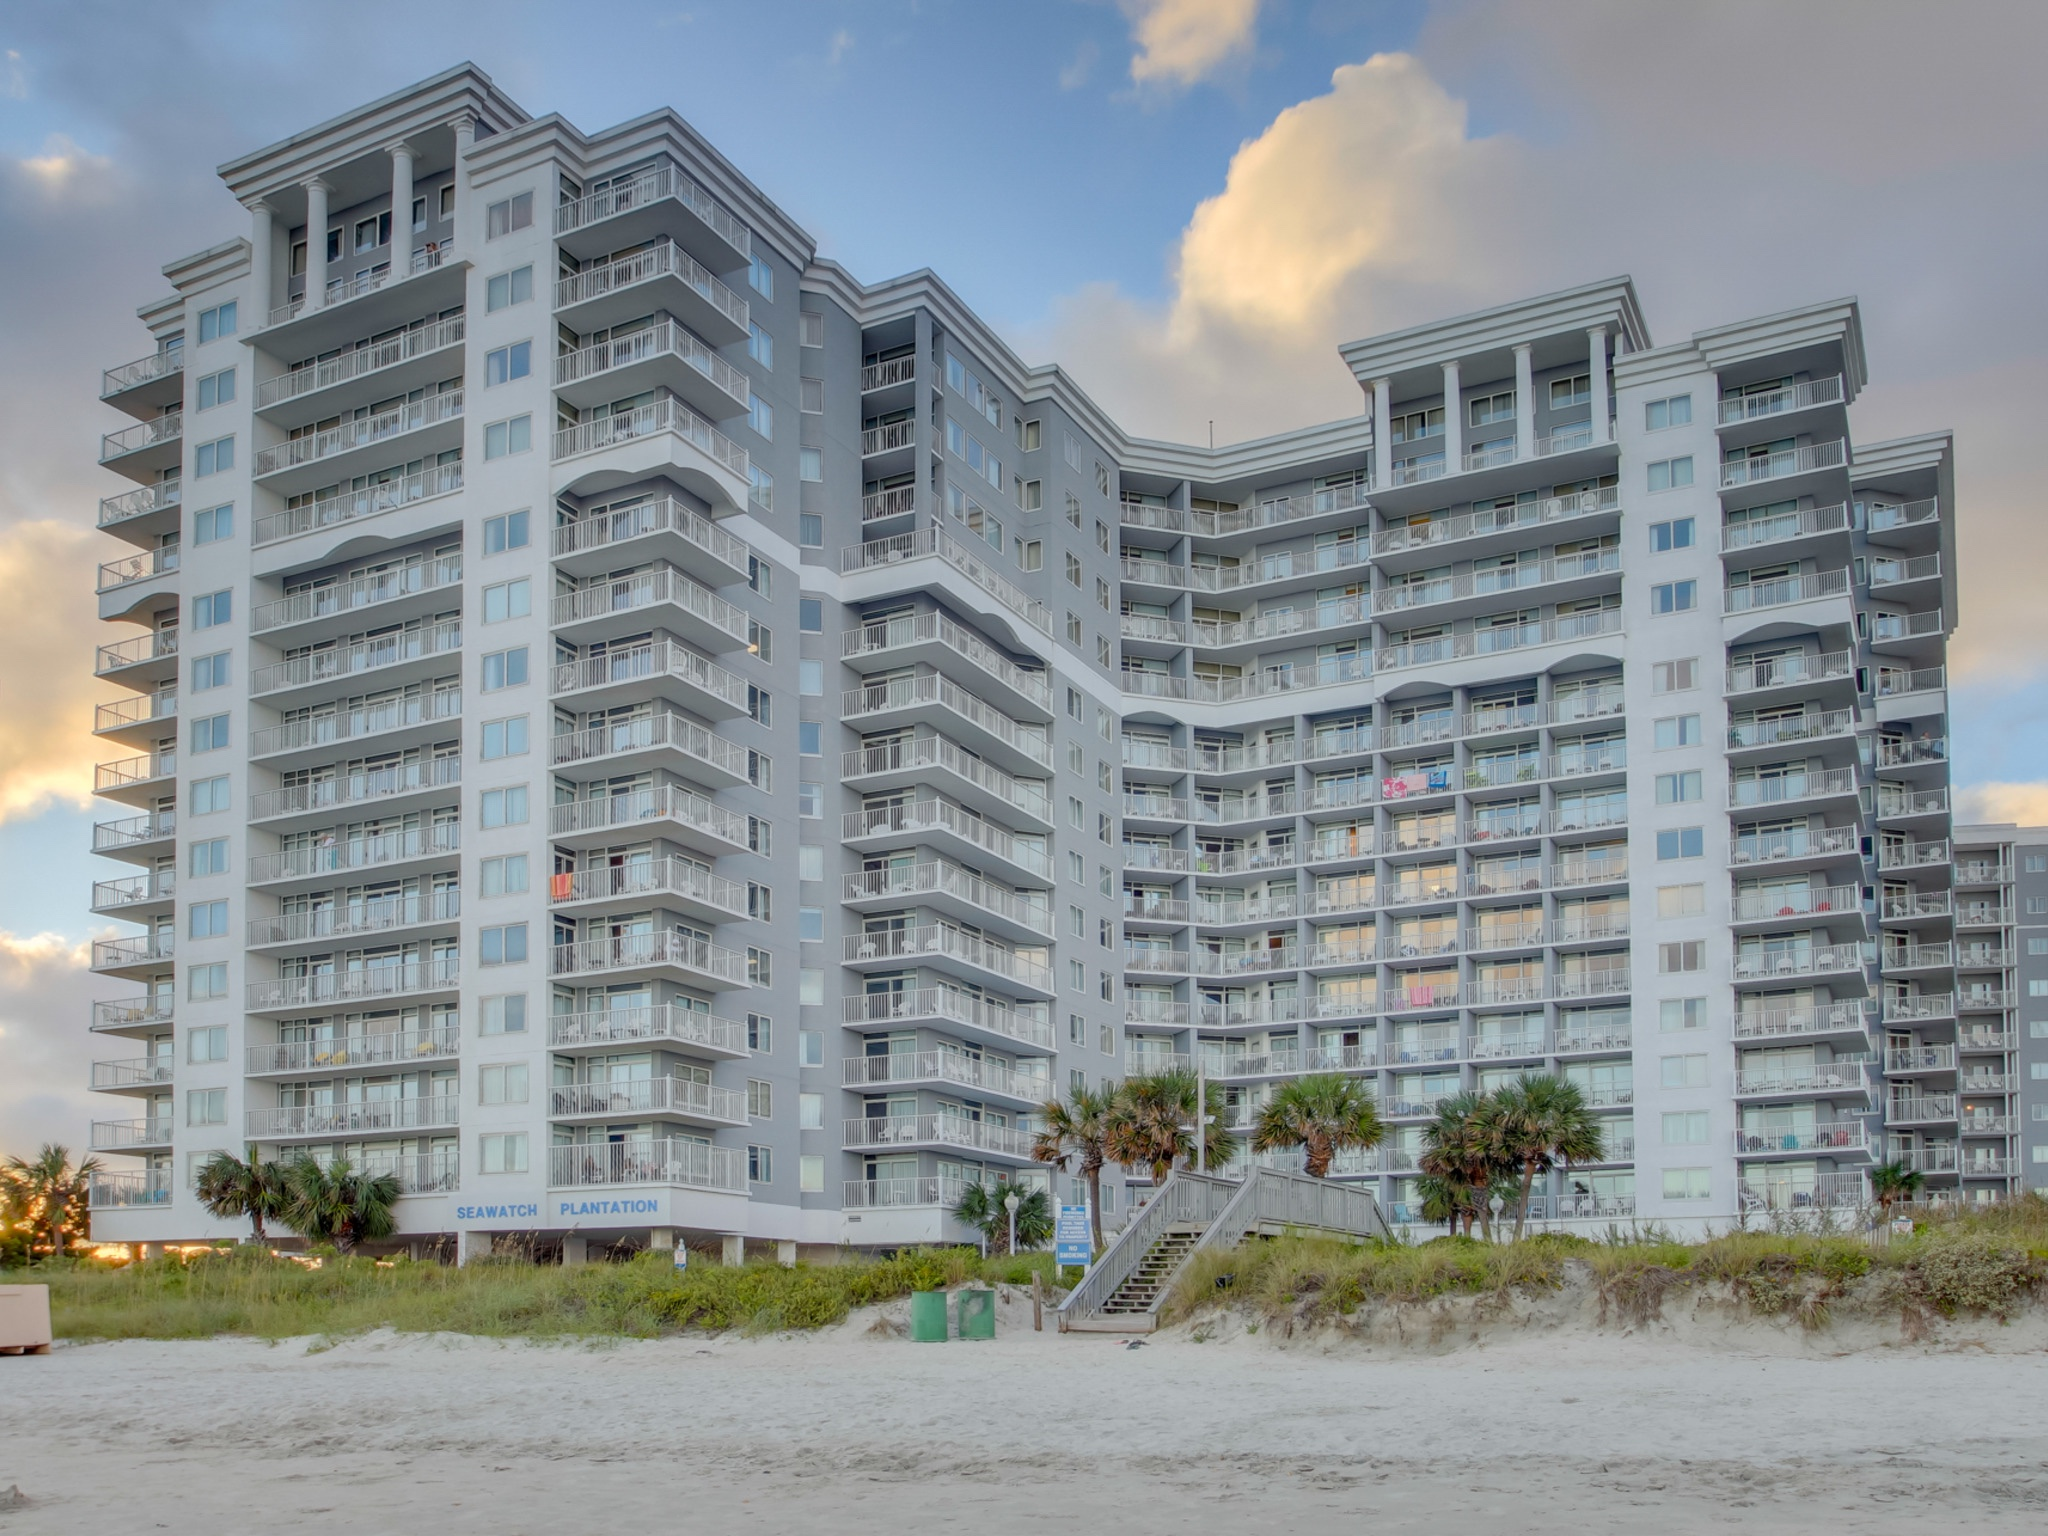 Apartment Seawatch Plantation 1 Bedroom 1 Bathroom photo 20212273